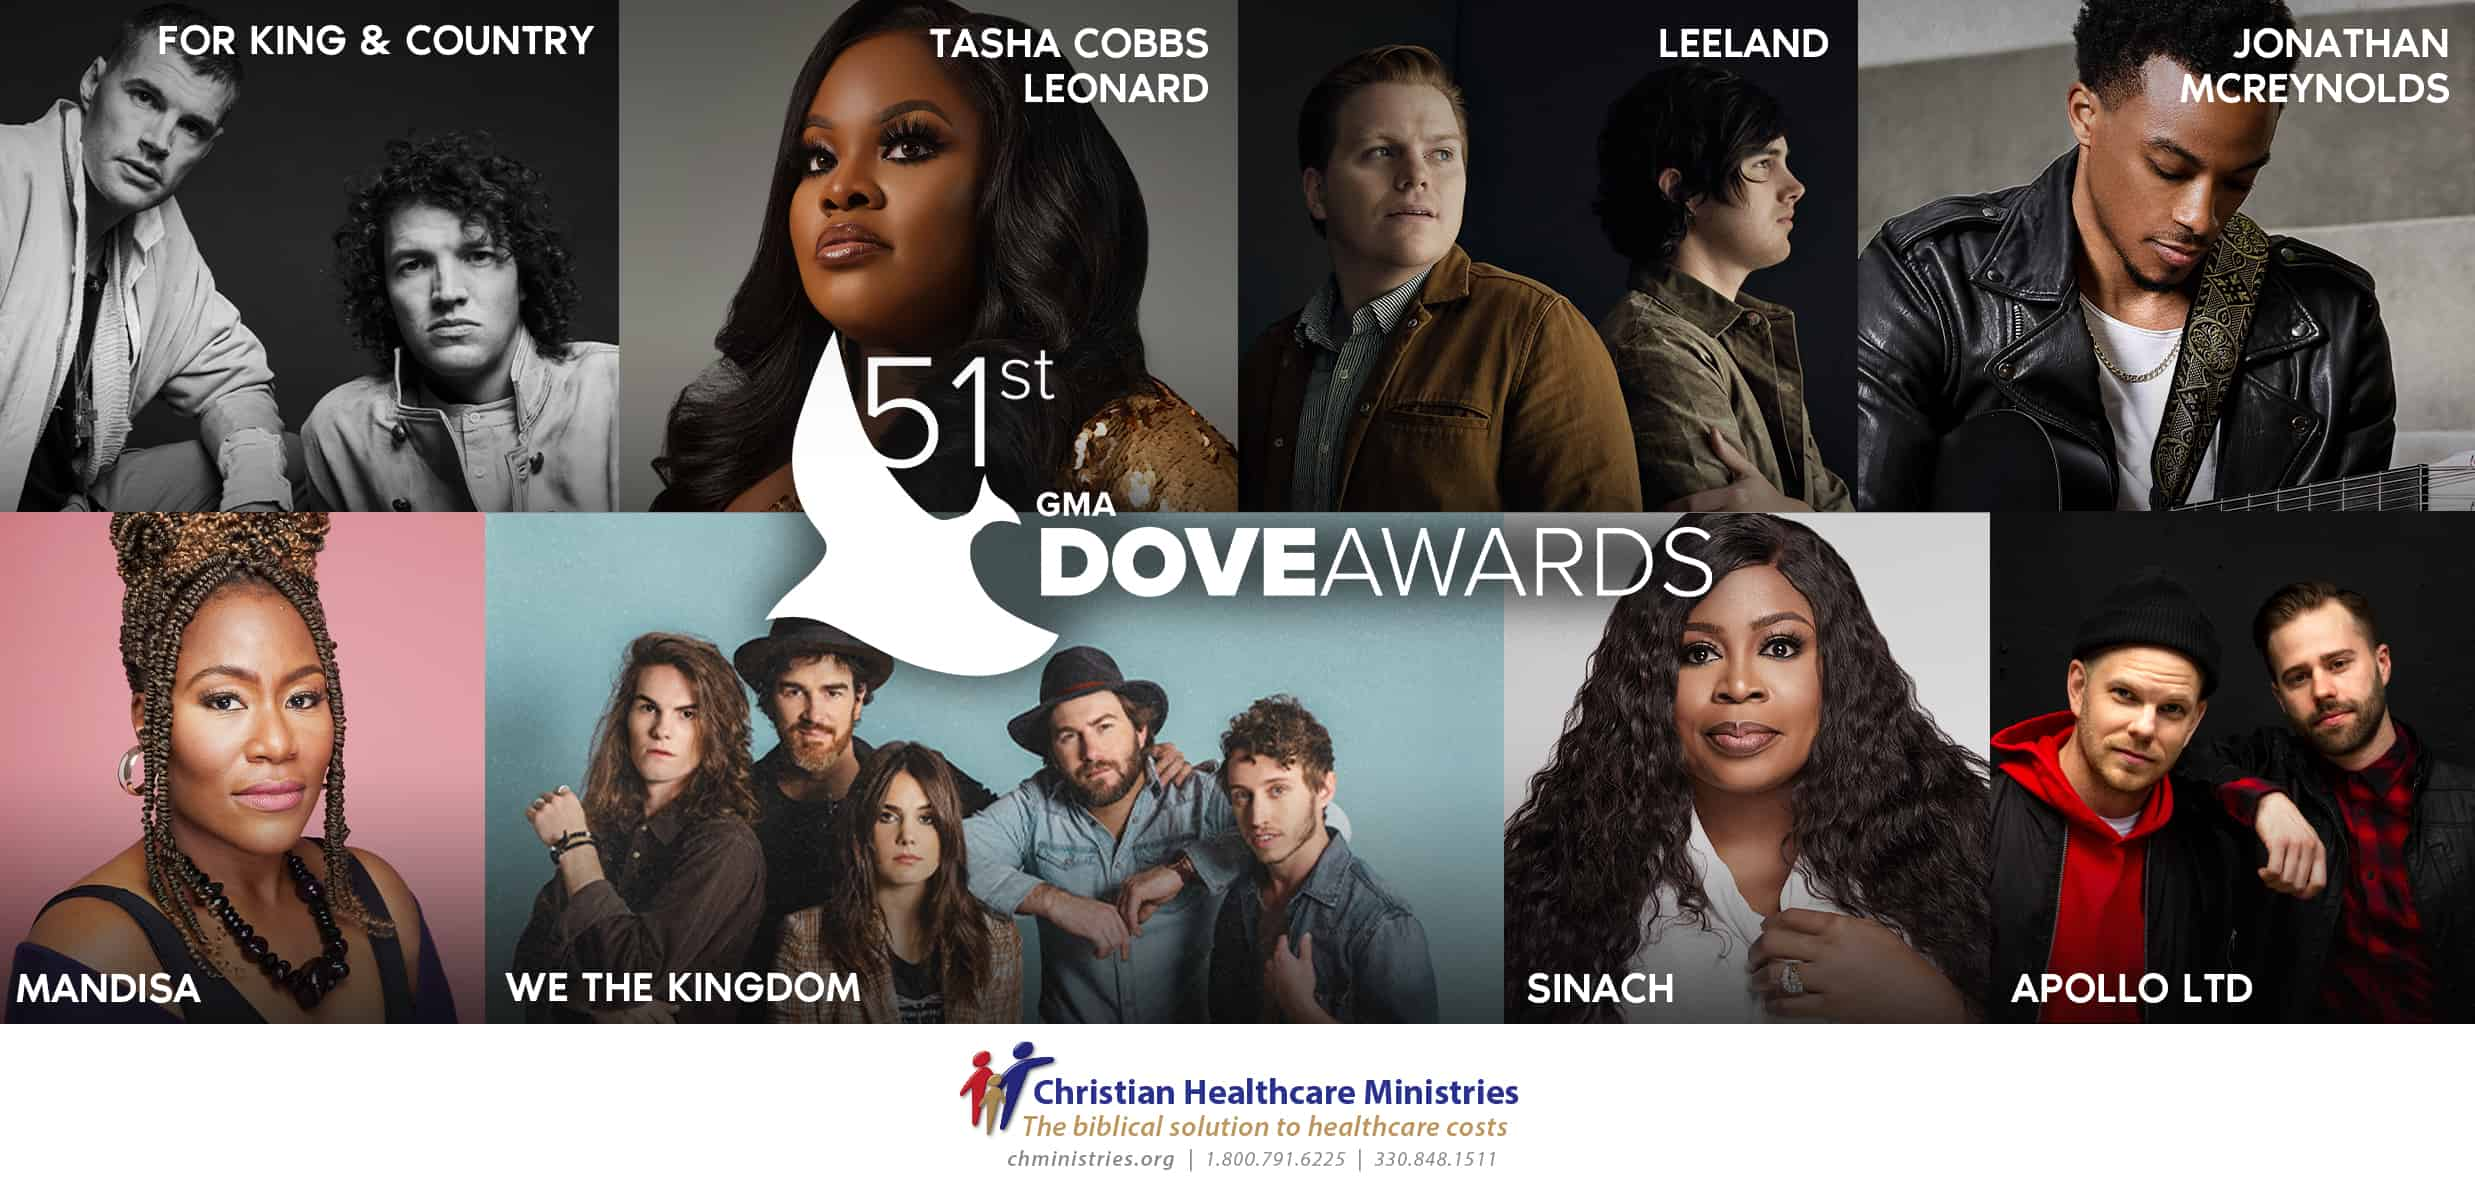 The Gospel Music Association Reveals First Round Of Performers For The 51st Annual GMA Dove Awards